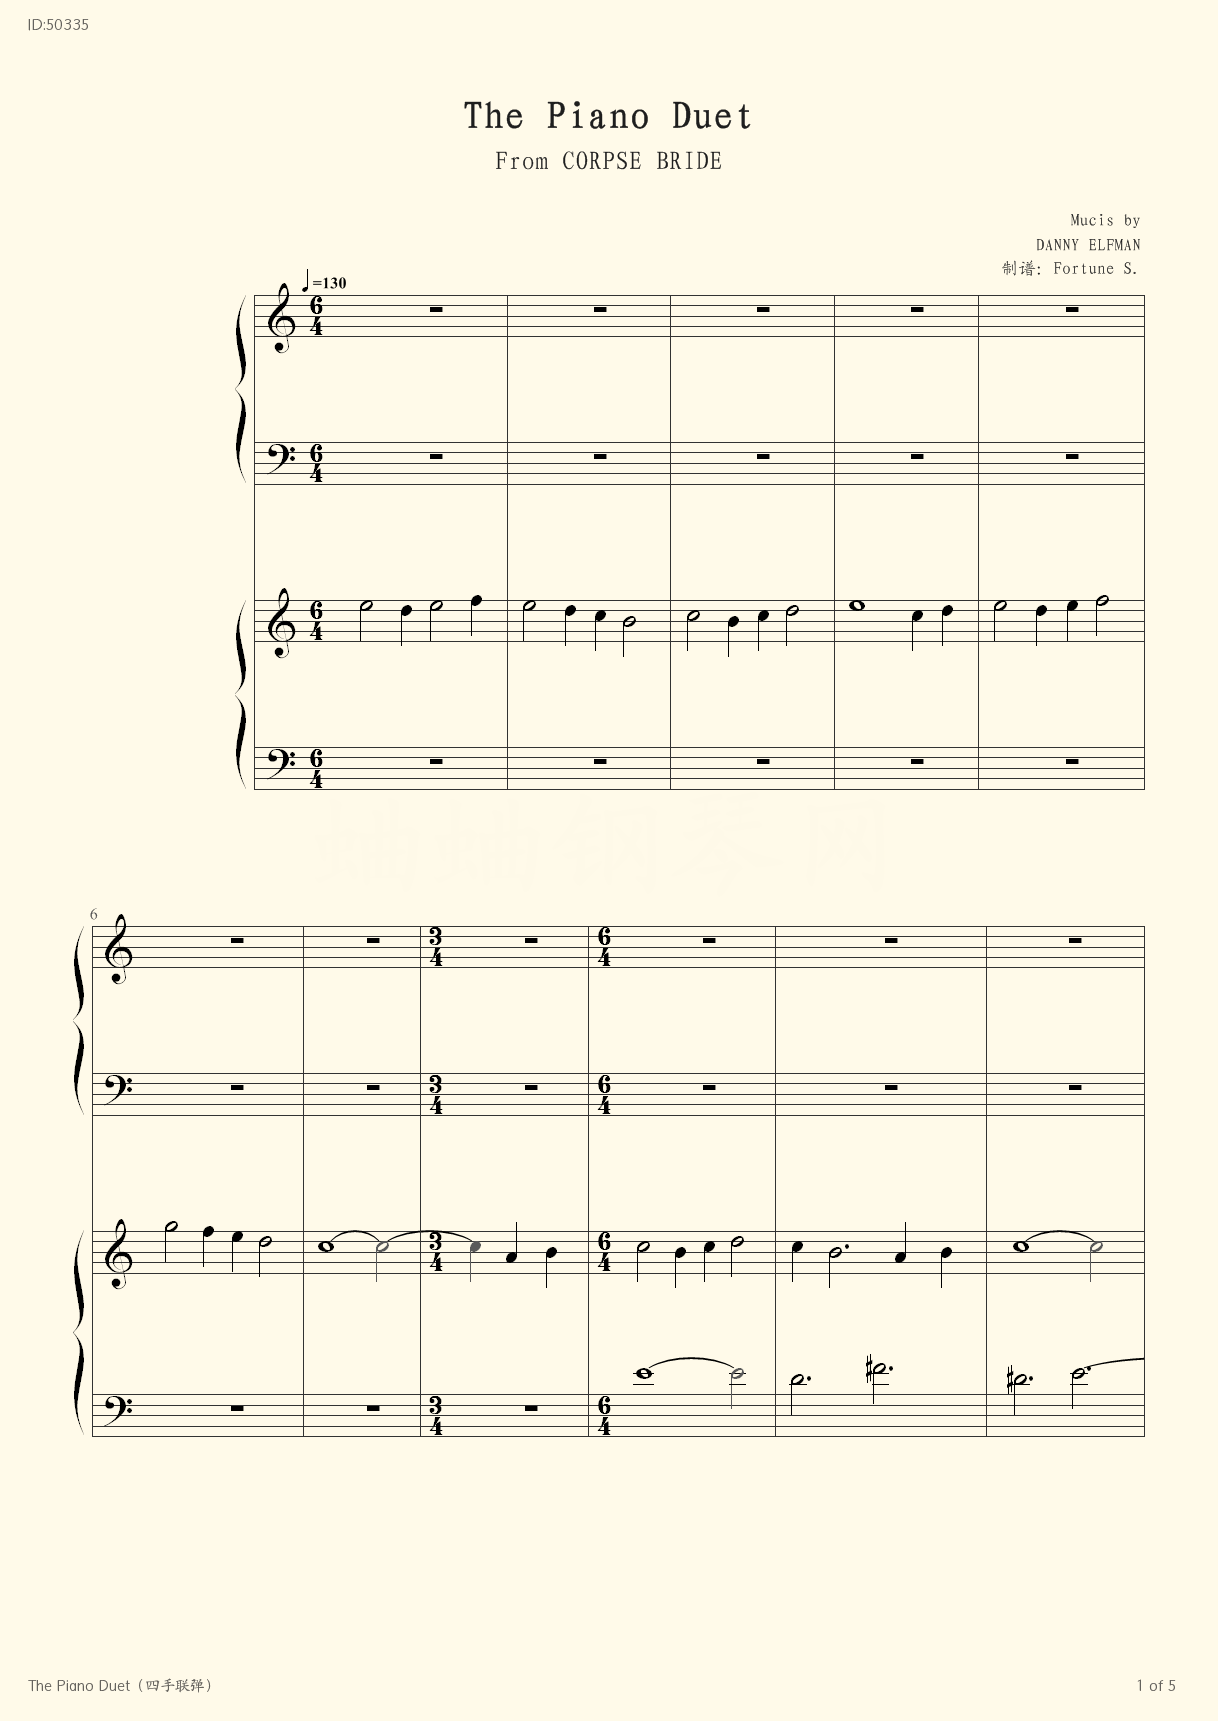 The Piano Duet  - Movies - first page